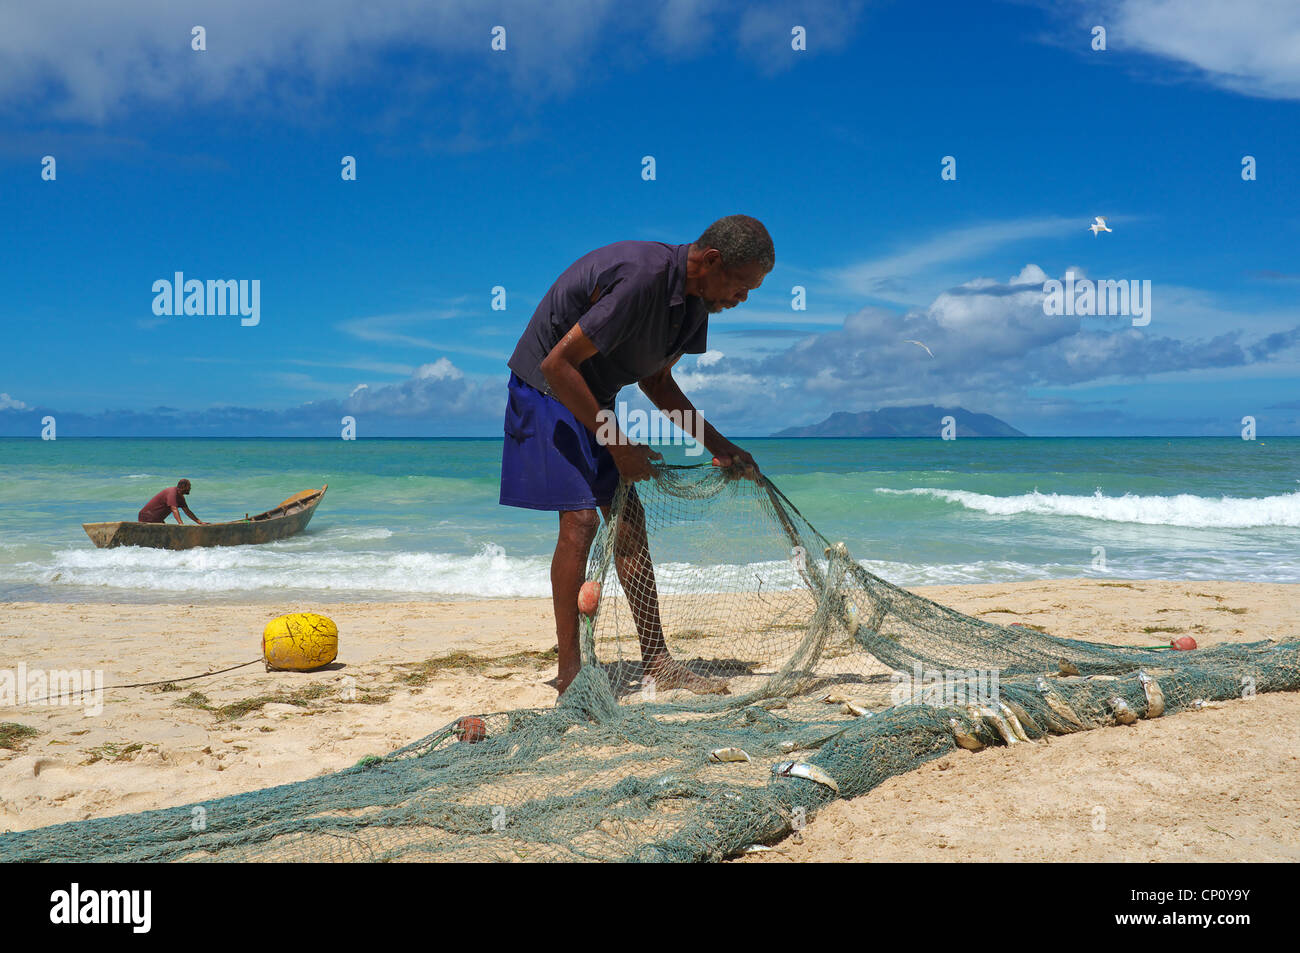 Local fisherman taking fish from the nets that have just been brought in from the Indian Ocean, Seychelles, - Stock Image